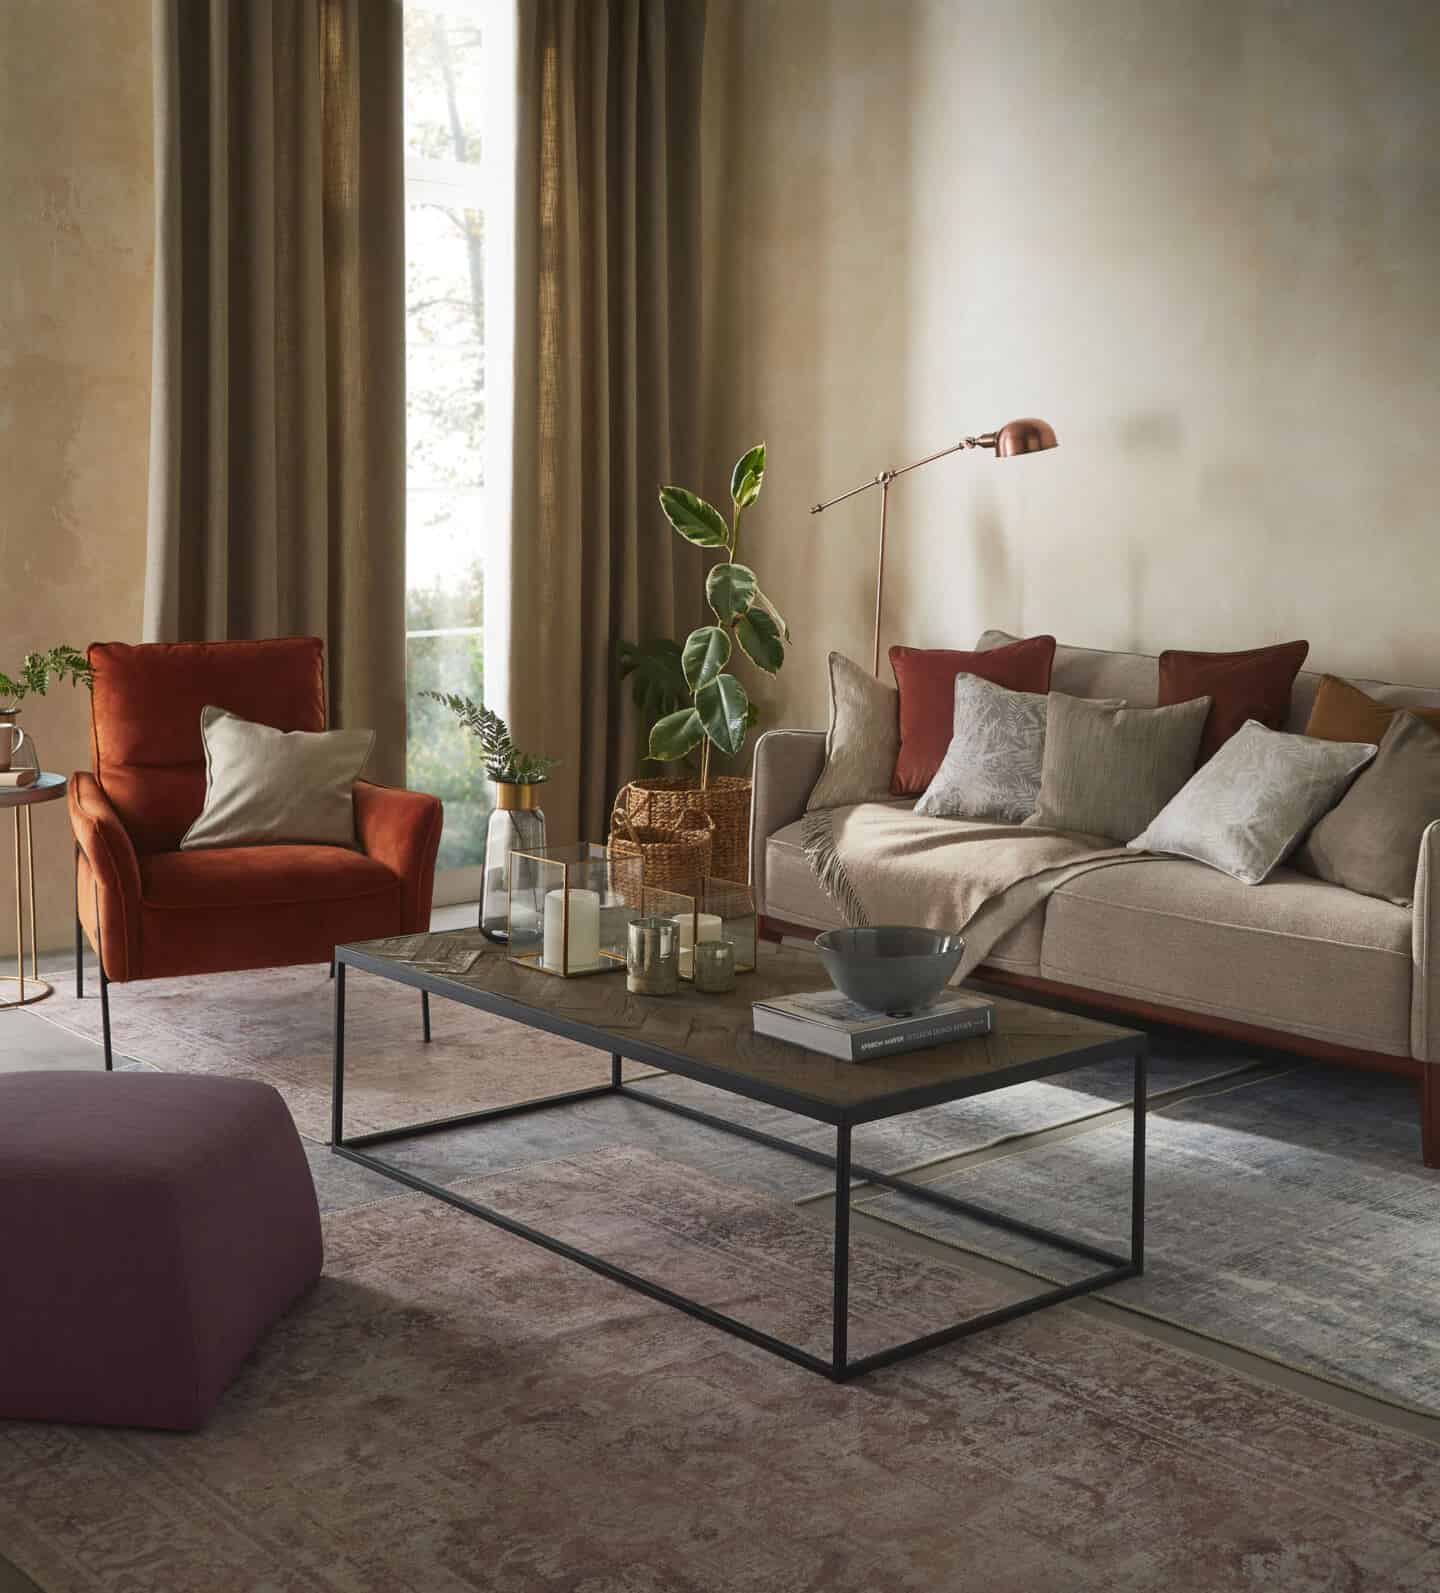 Textured Lives. Using texture in interiors to bring your home to life. A living room featuring sofa and armchair and pouffe around a coffetable on a rug.  A window with curtains is behind the armchair.